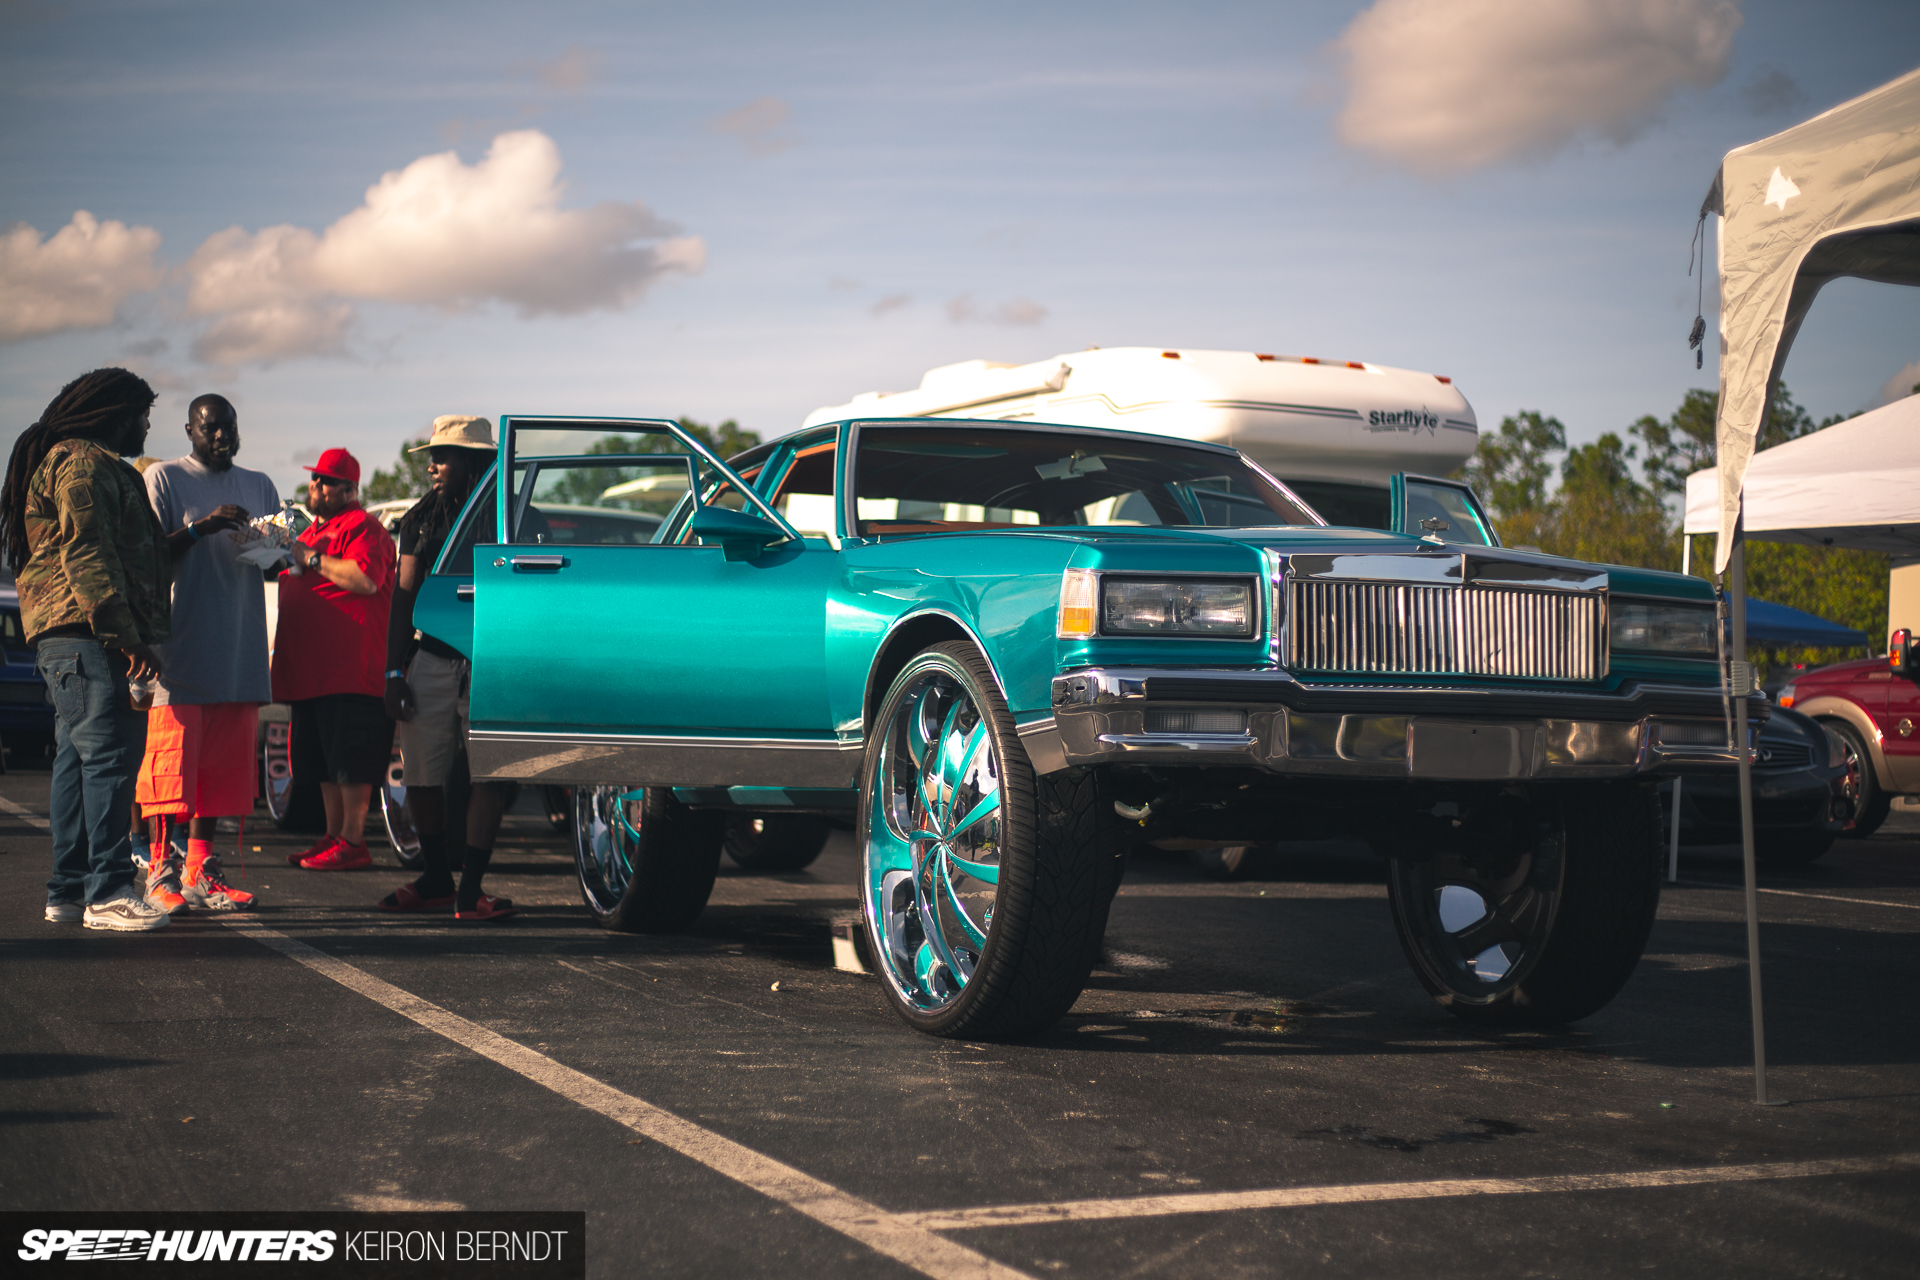 Getting A Taste Of The Donk Life World Blogs - Donk car show